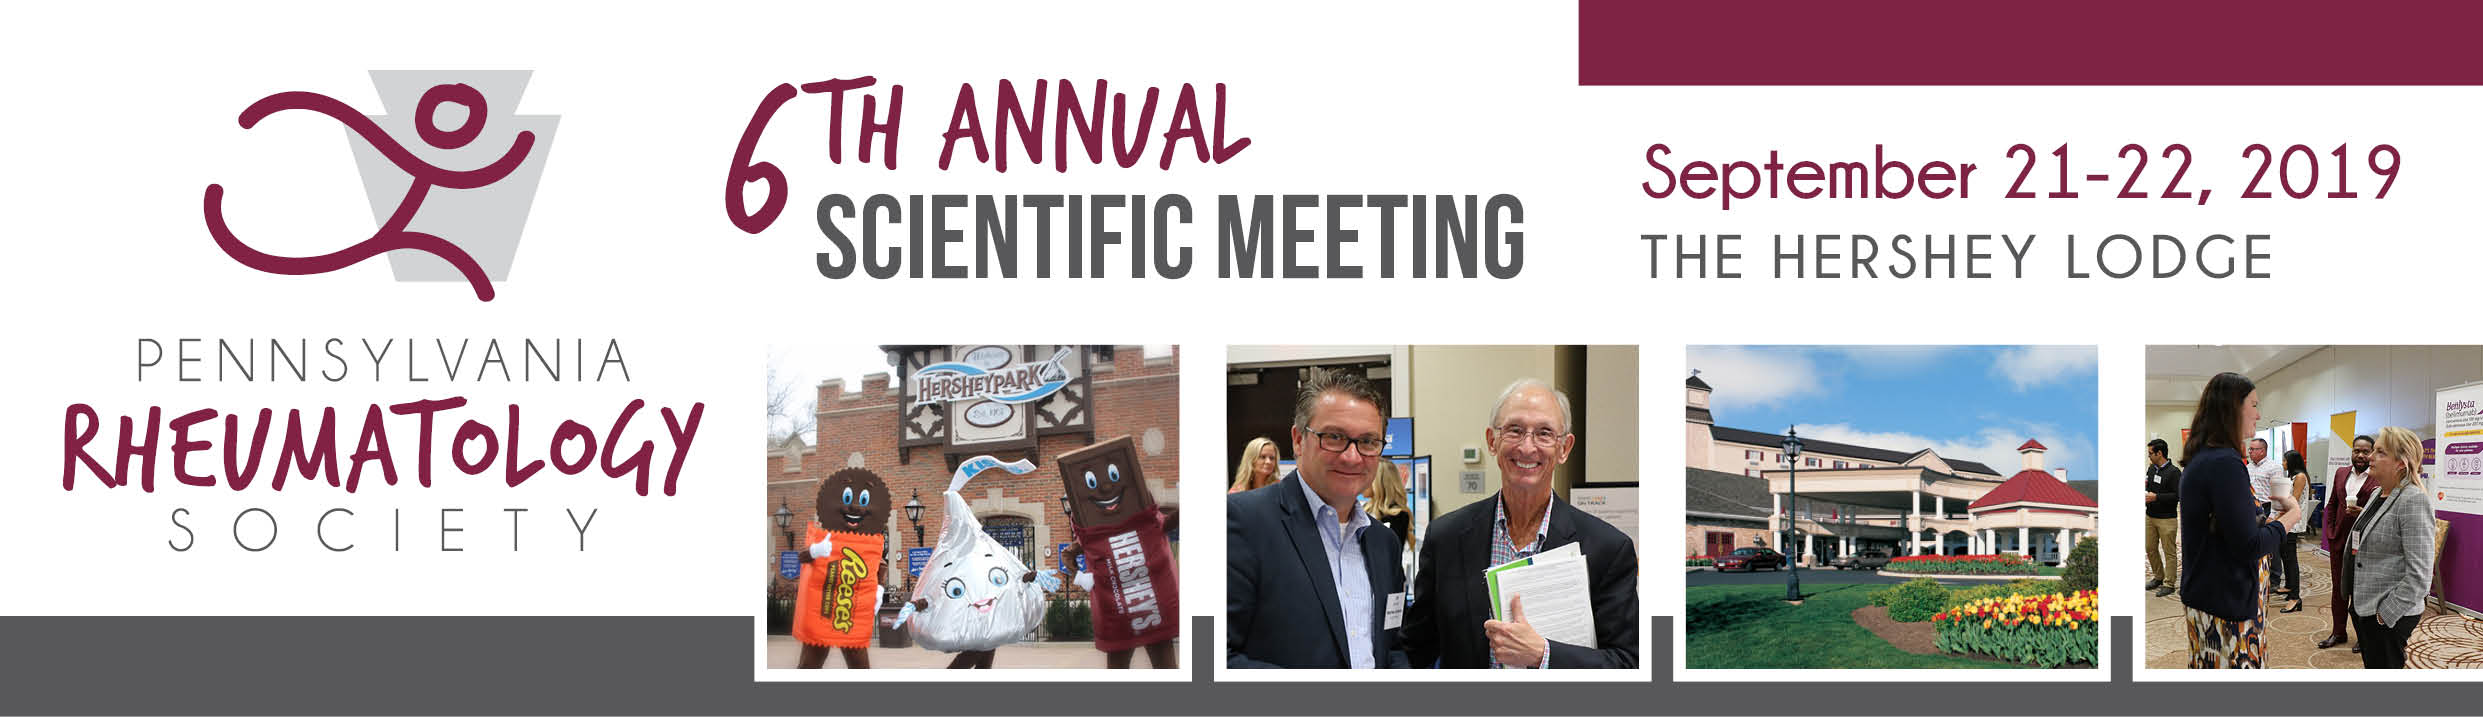 2019 Pennsylvania Rheumatology Society Annual Meeting